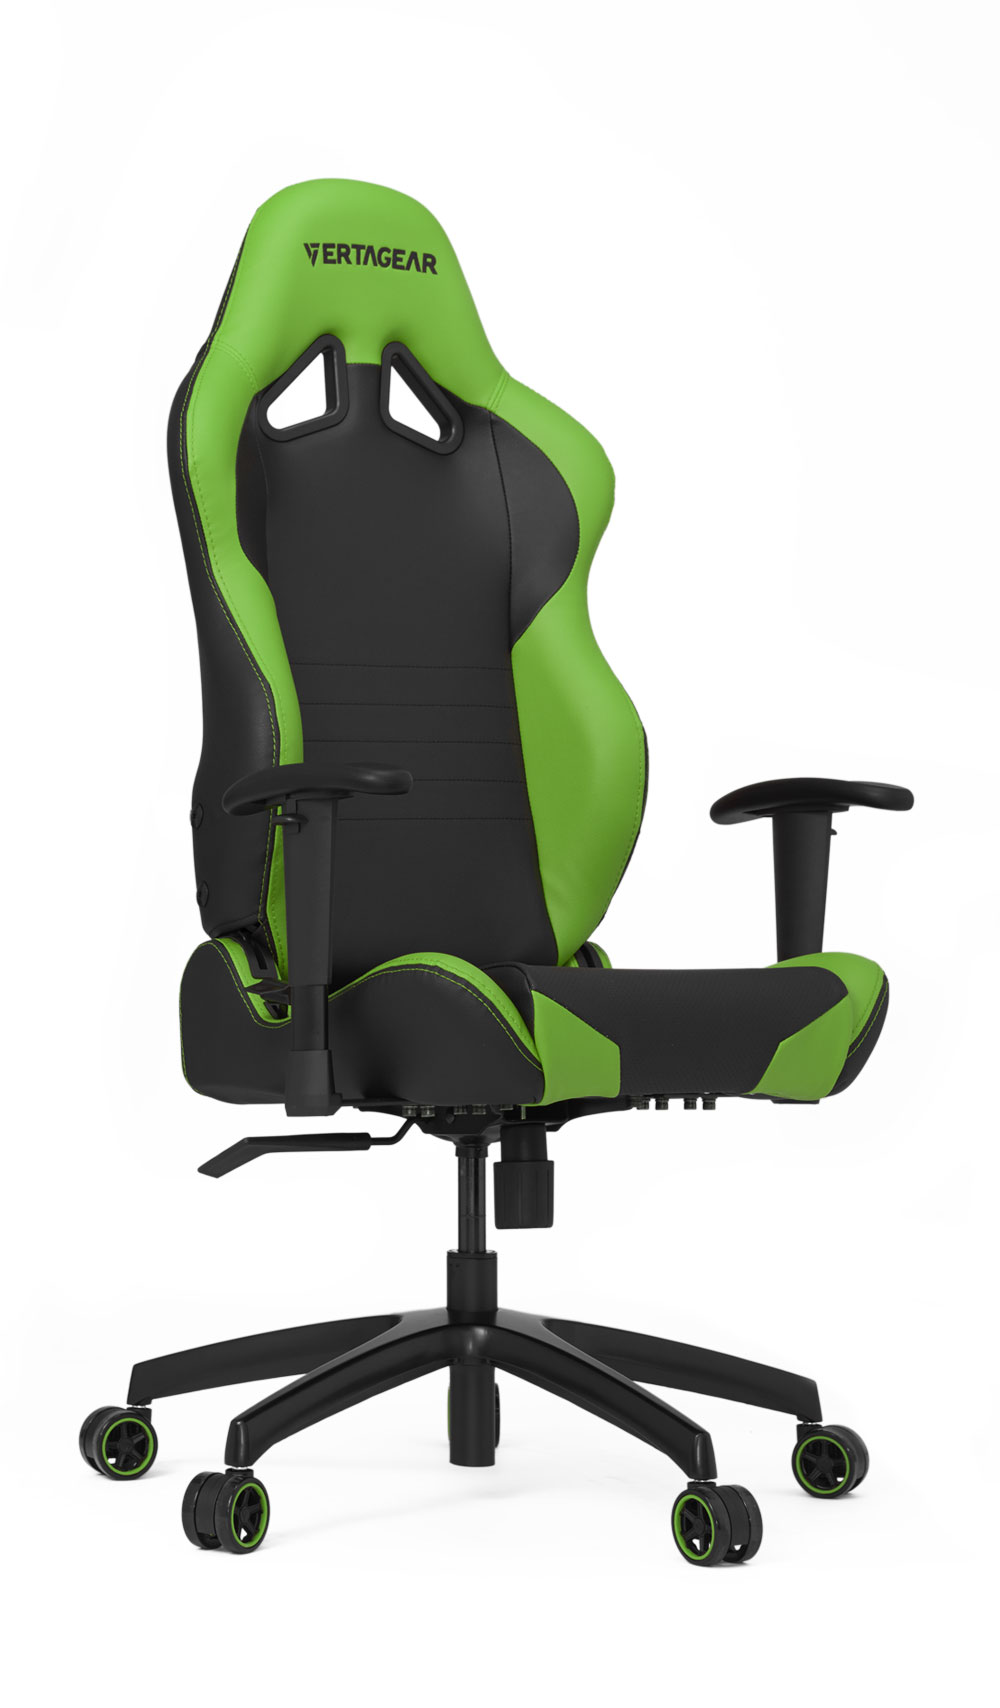 Vertagear SL2000 Gaming Chair Black / Green